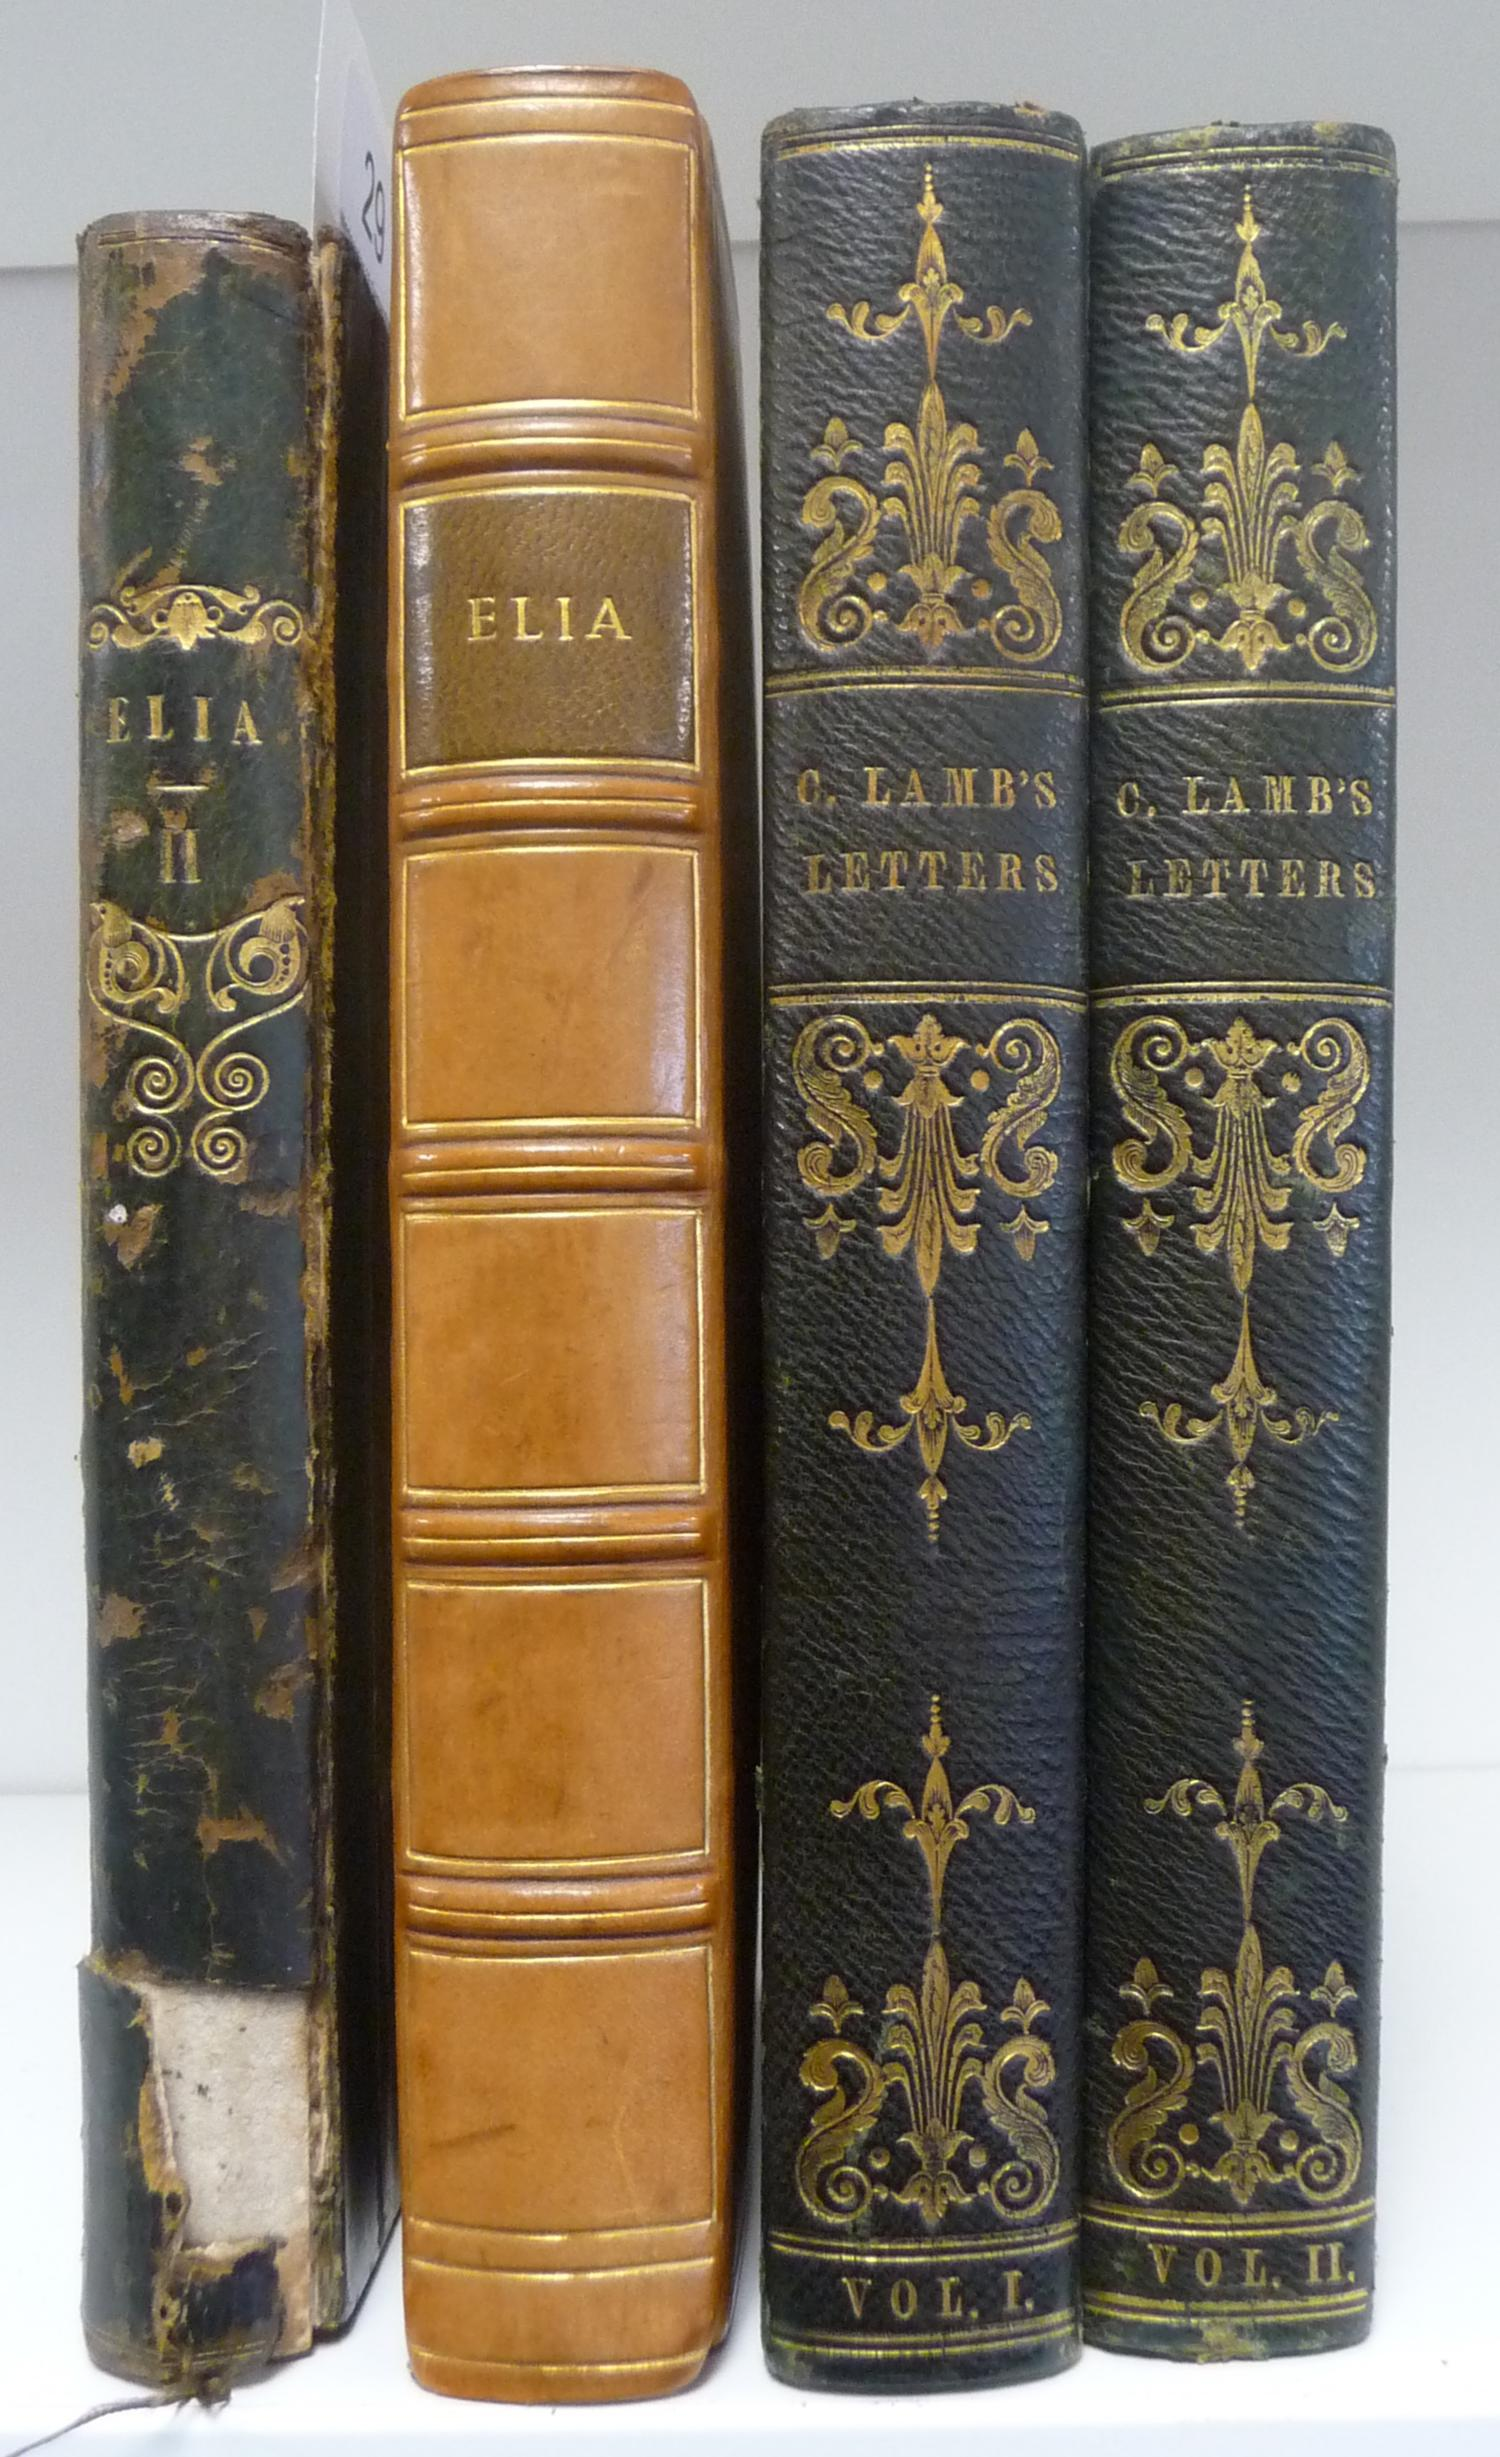 essays of elia essays of elia essay writing strategies essay writing strategies ipnodns ru essays of elia by charles lamb top images archive original essays of elia by